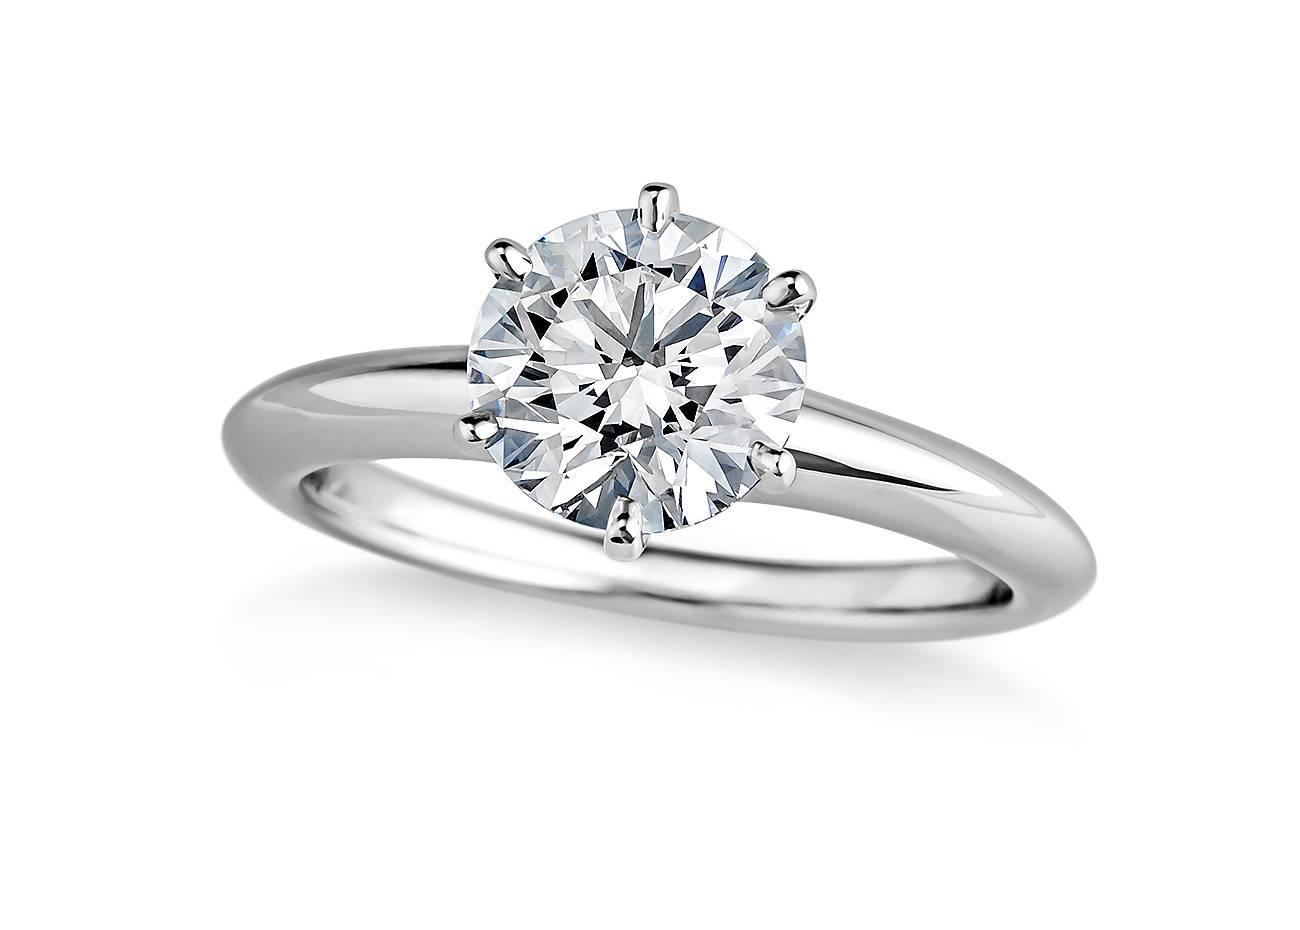 tiffany and co carat diamond platinum engagement ring for sale at 1stdibs. Black Bedroom Furniture Sets. Home Design Ideas